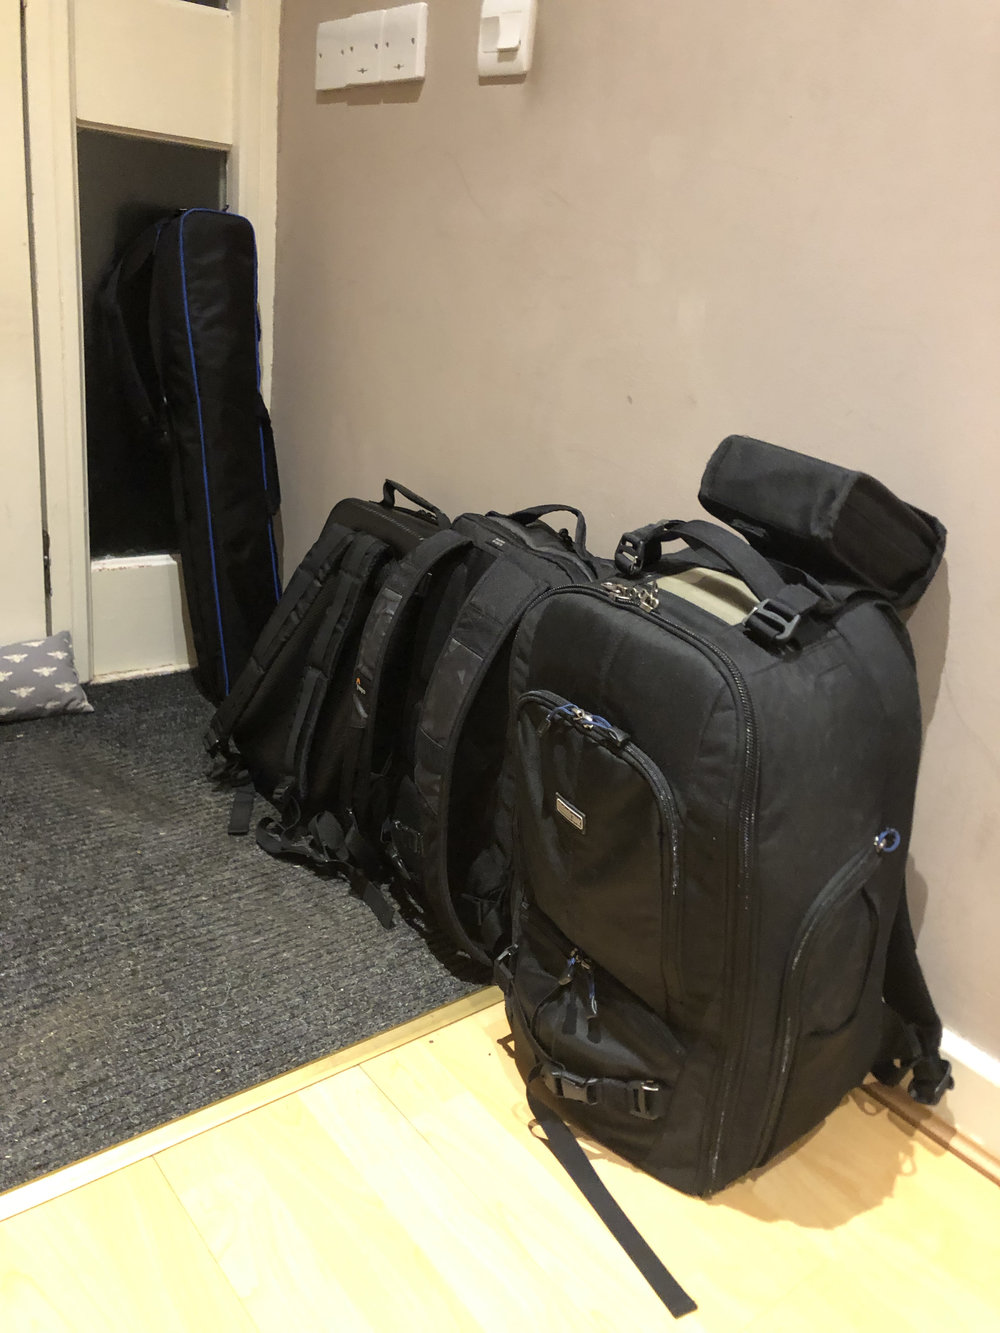 All packed ready to go in the morning.